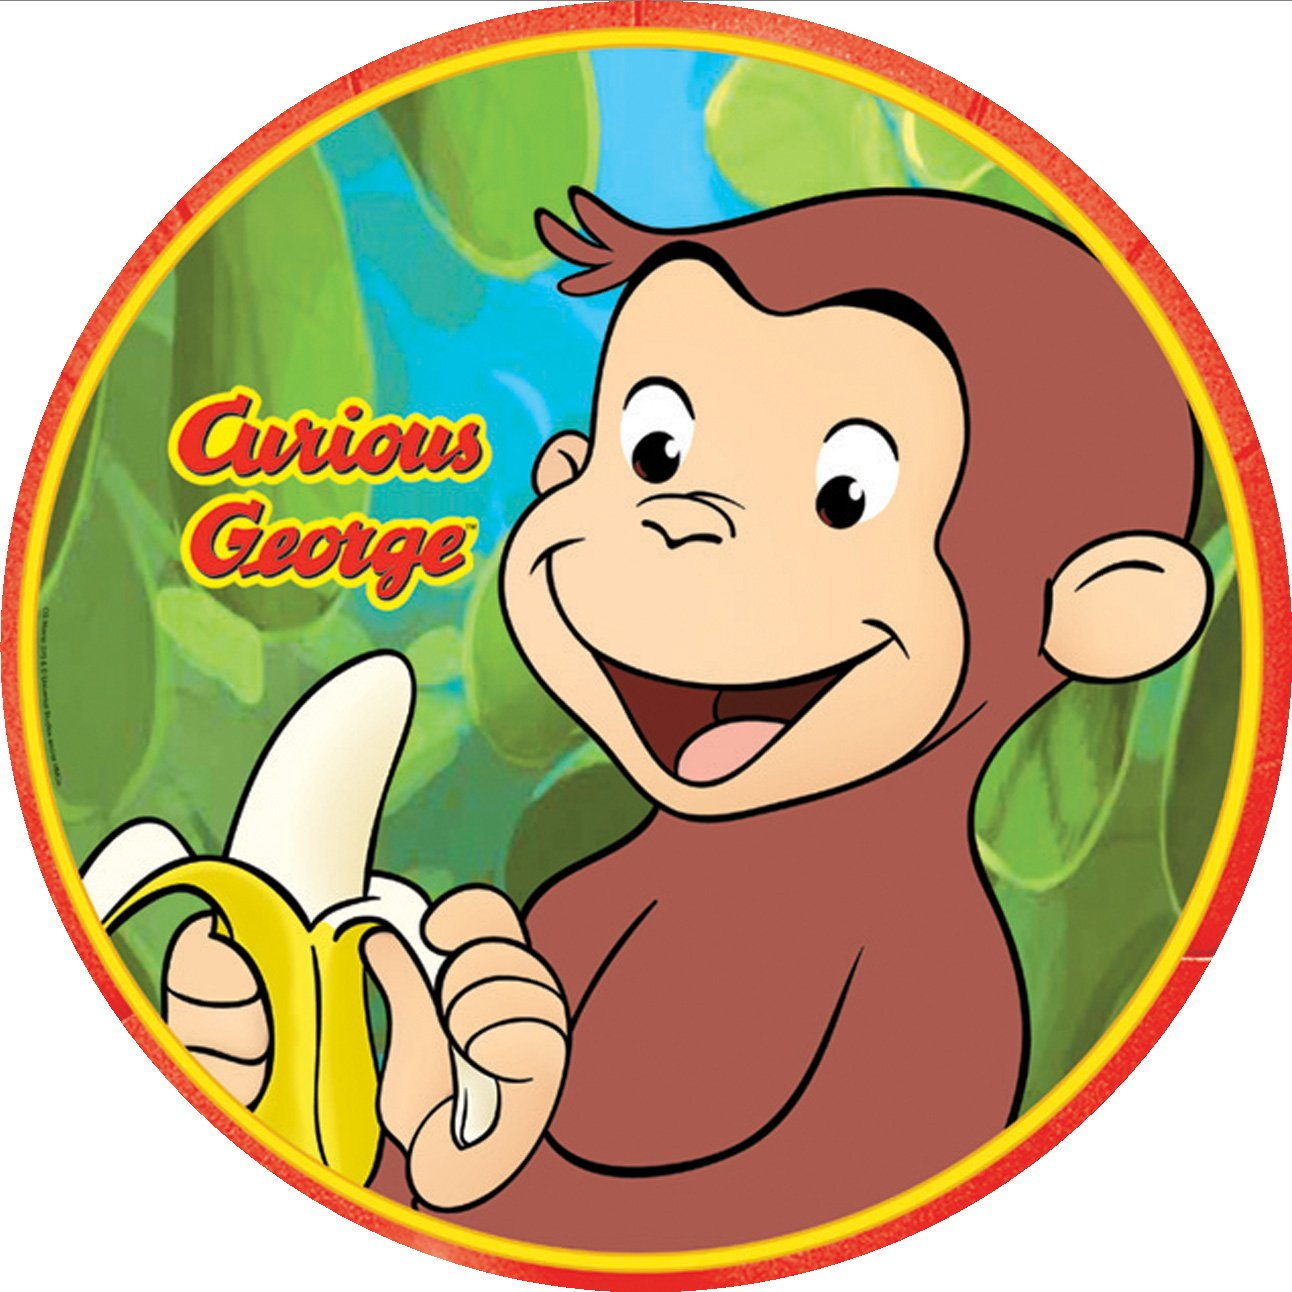 Edible Cake Images Curious George : edible images photo cakes cake stickers Curious George ...